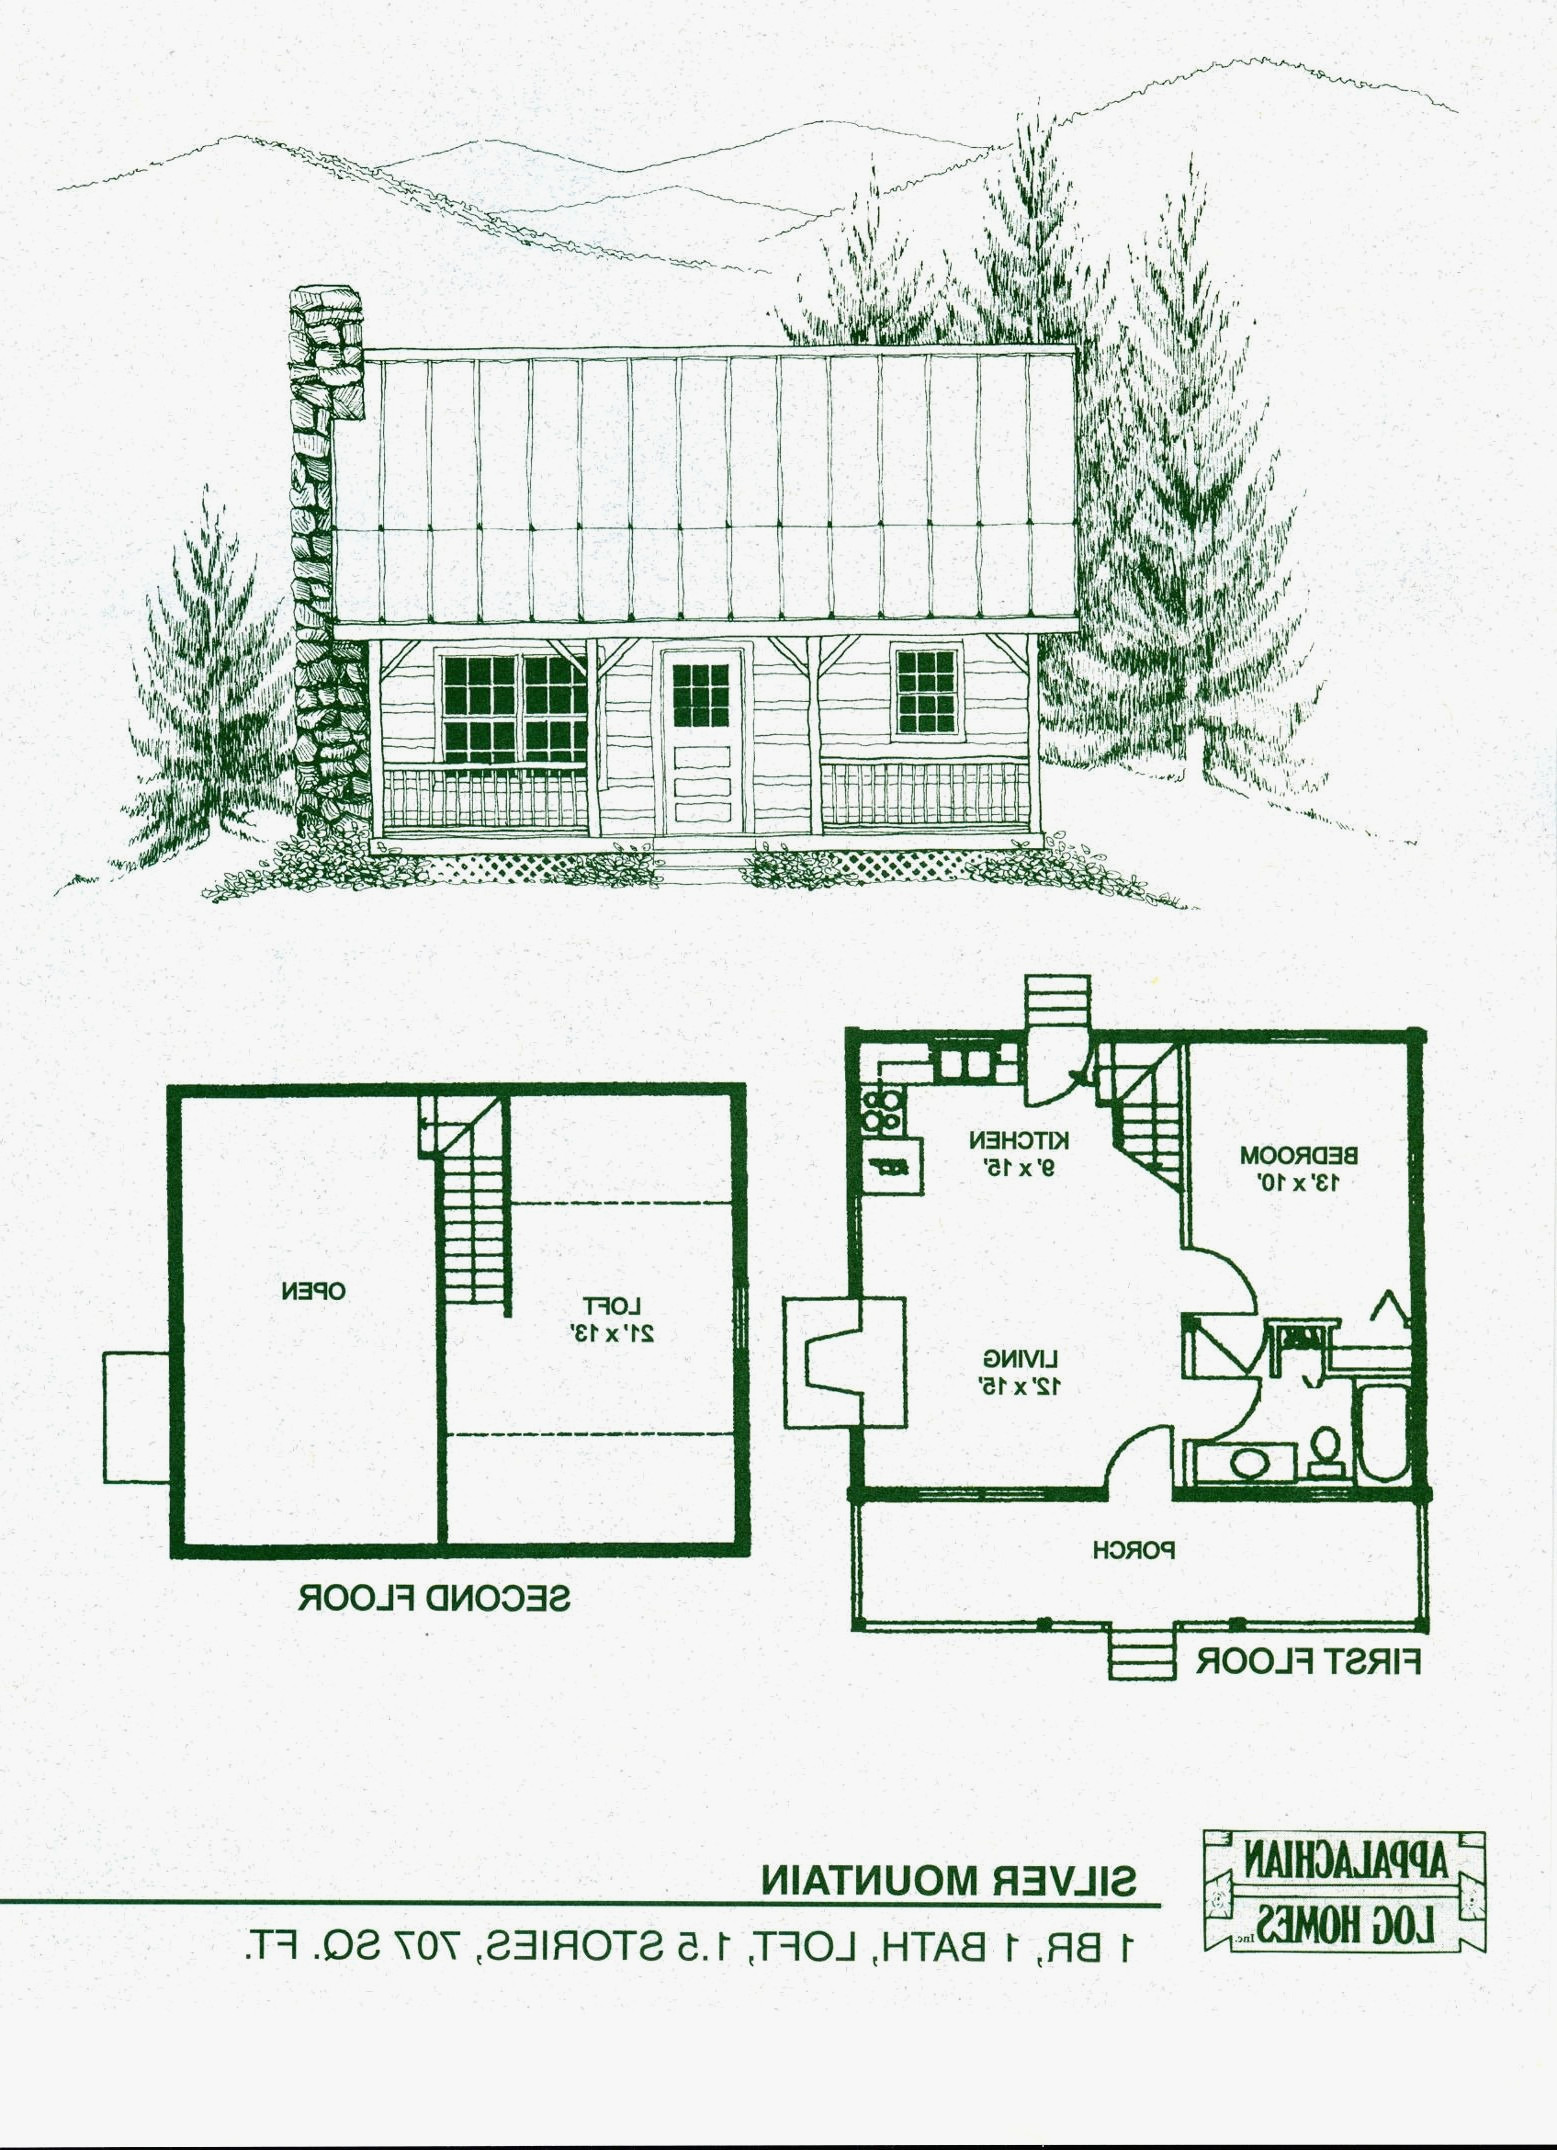 small cabins with loft floor plans lovely cabins with lofts floor plans best ideas about log cabin of small cabins with loft floor plans